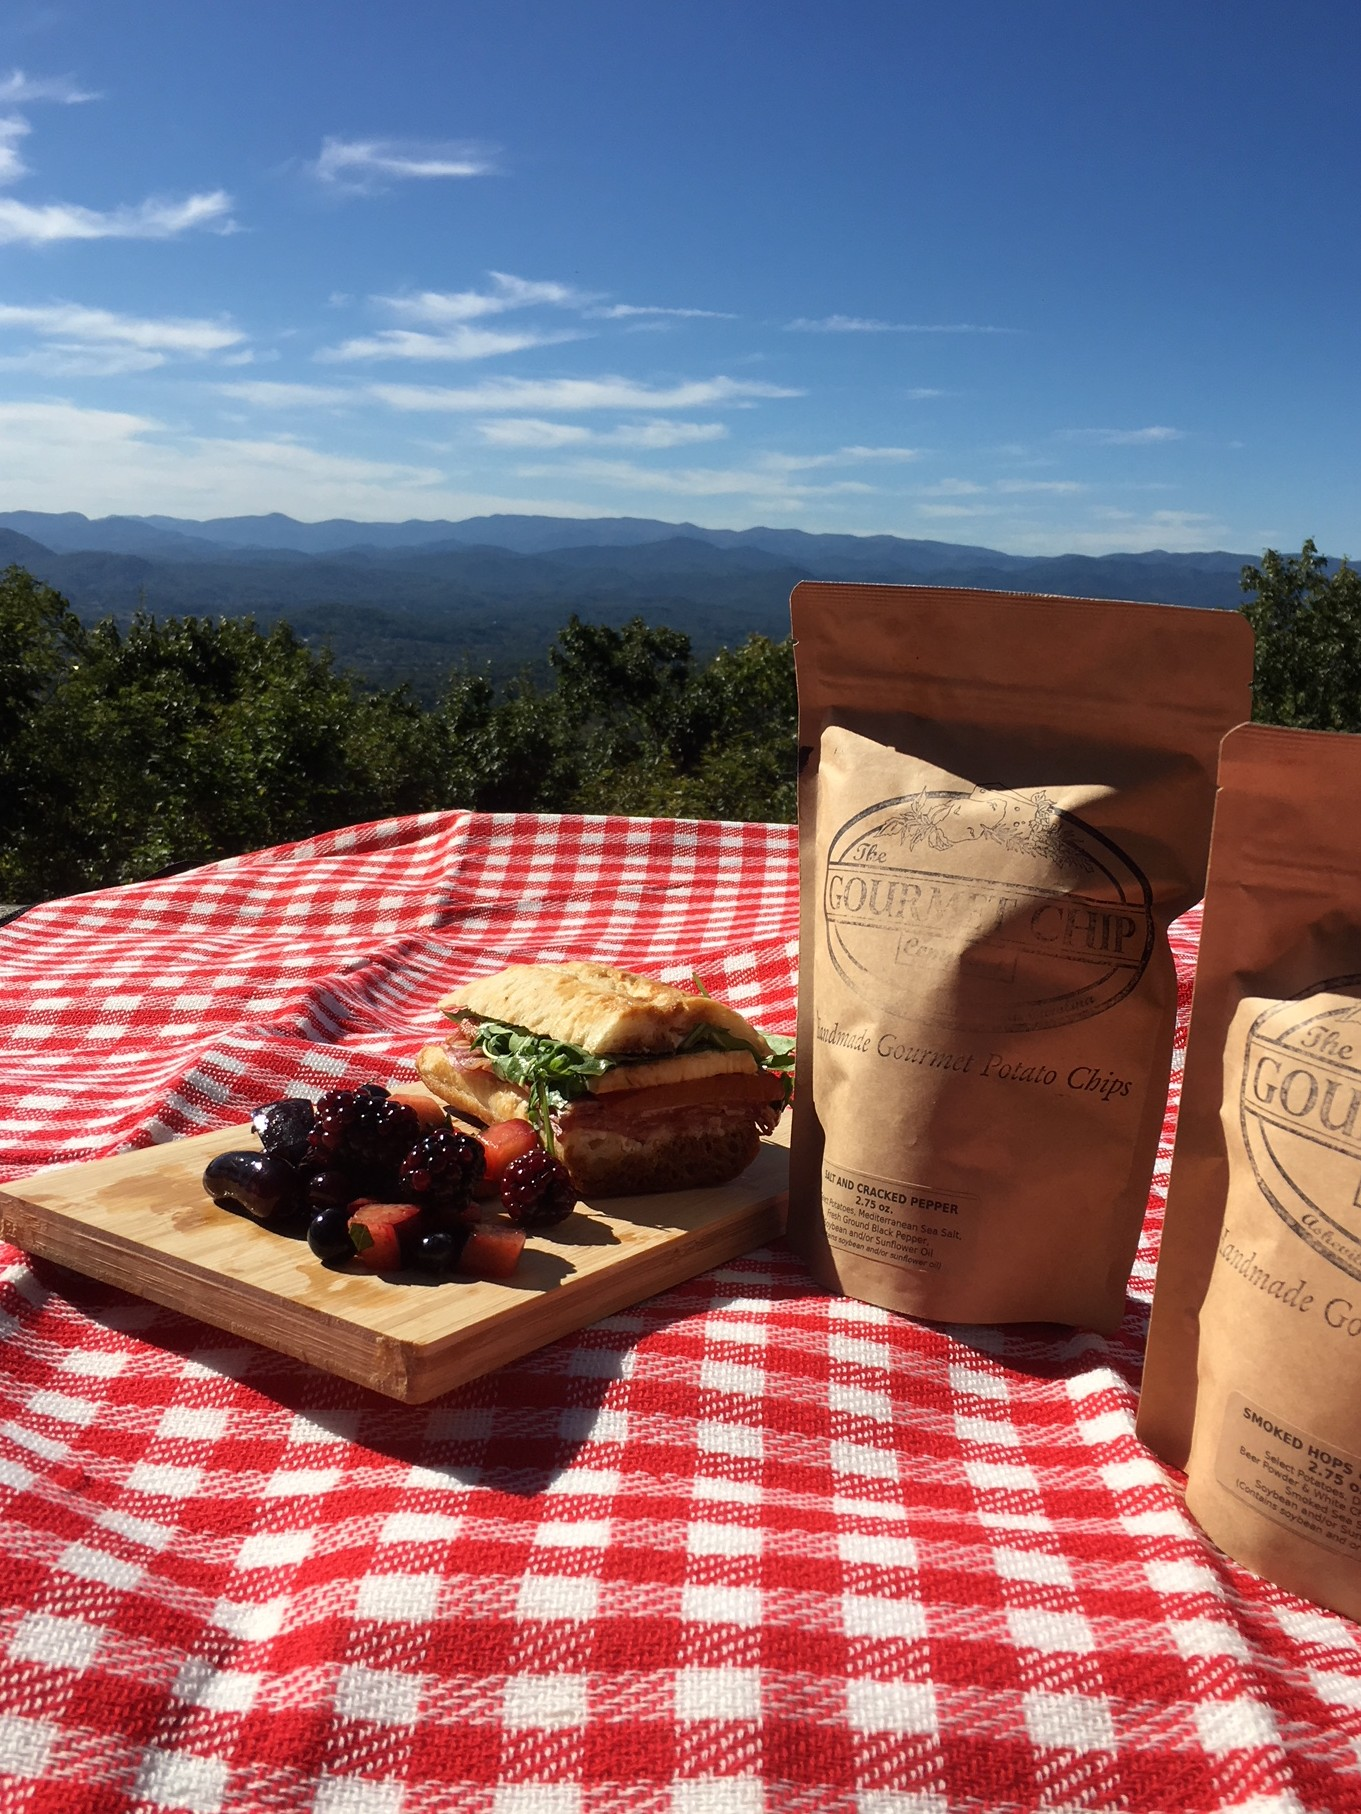 picnic blanket with sandwich, chips, and mountain views